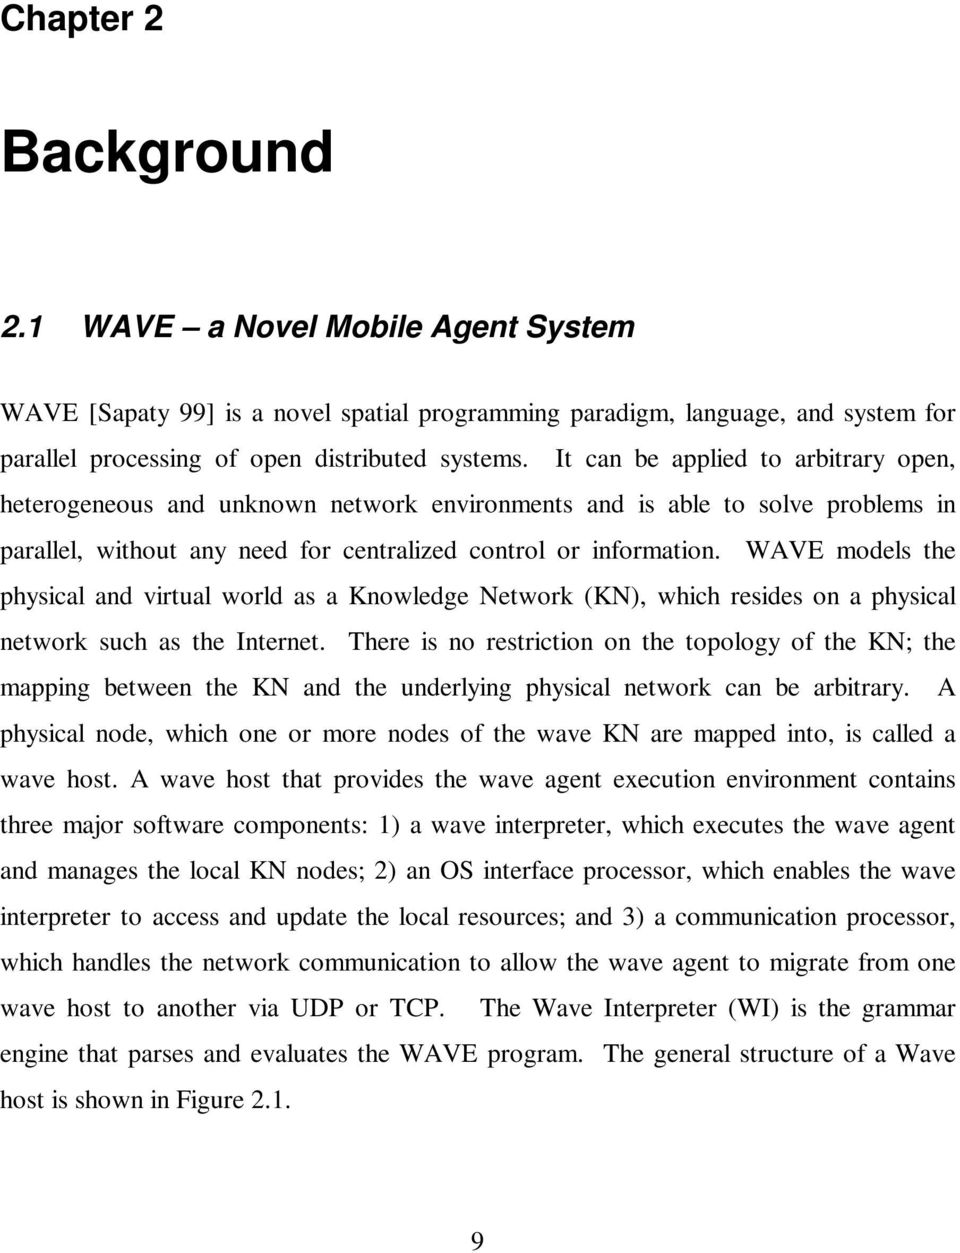 WAVE models the physical and virtual world as a Knowledge Network (KN), which resides on a physical network such as the Internet.